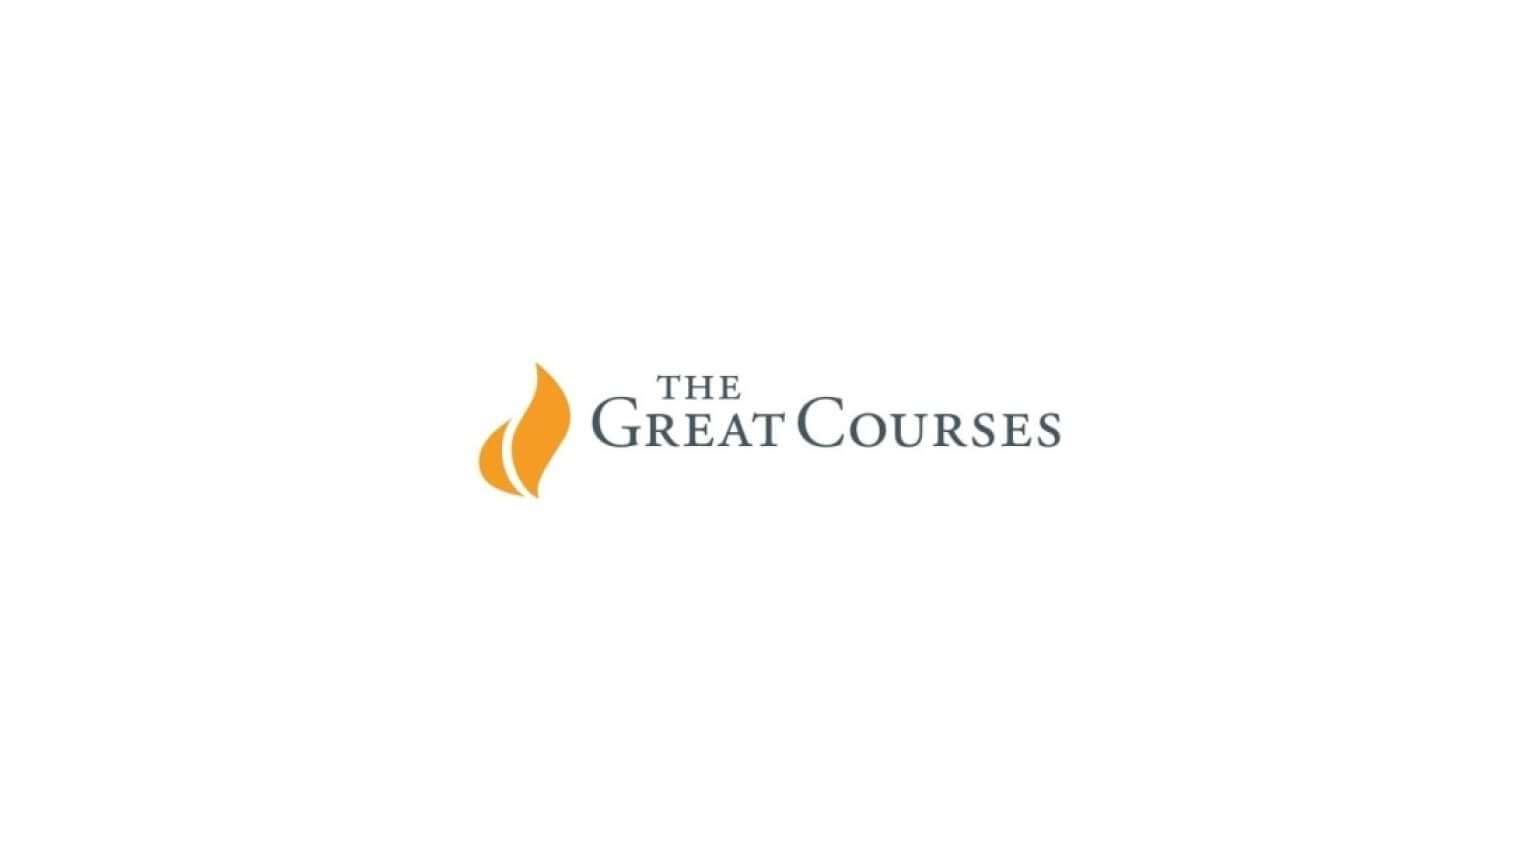 The Great Course logo